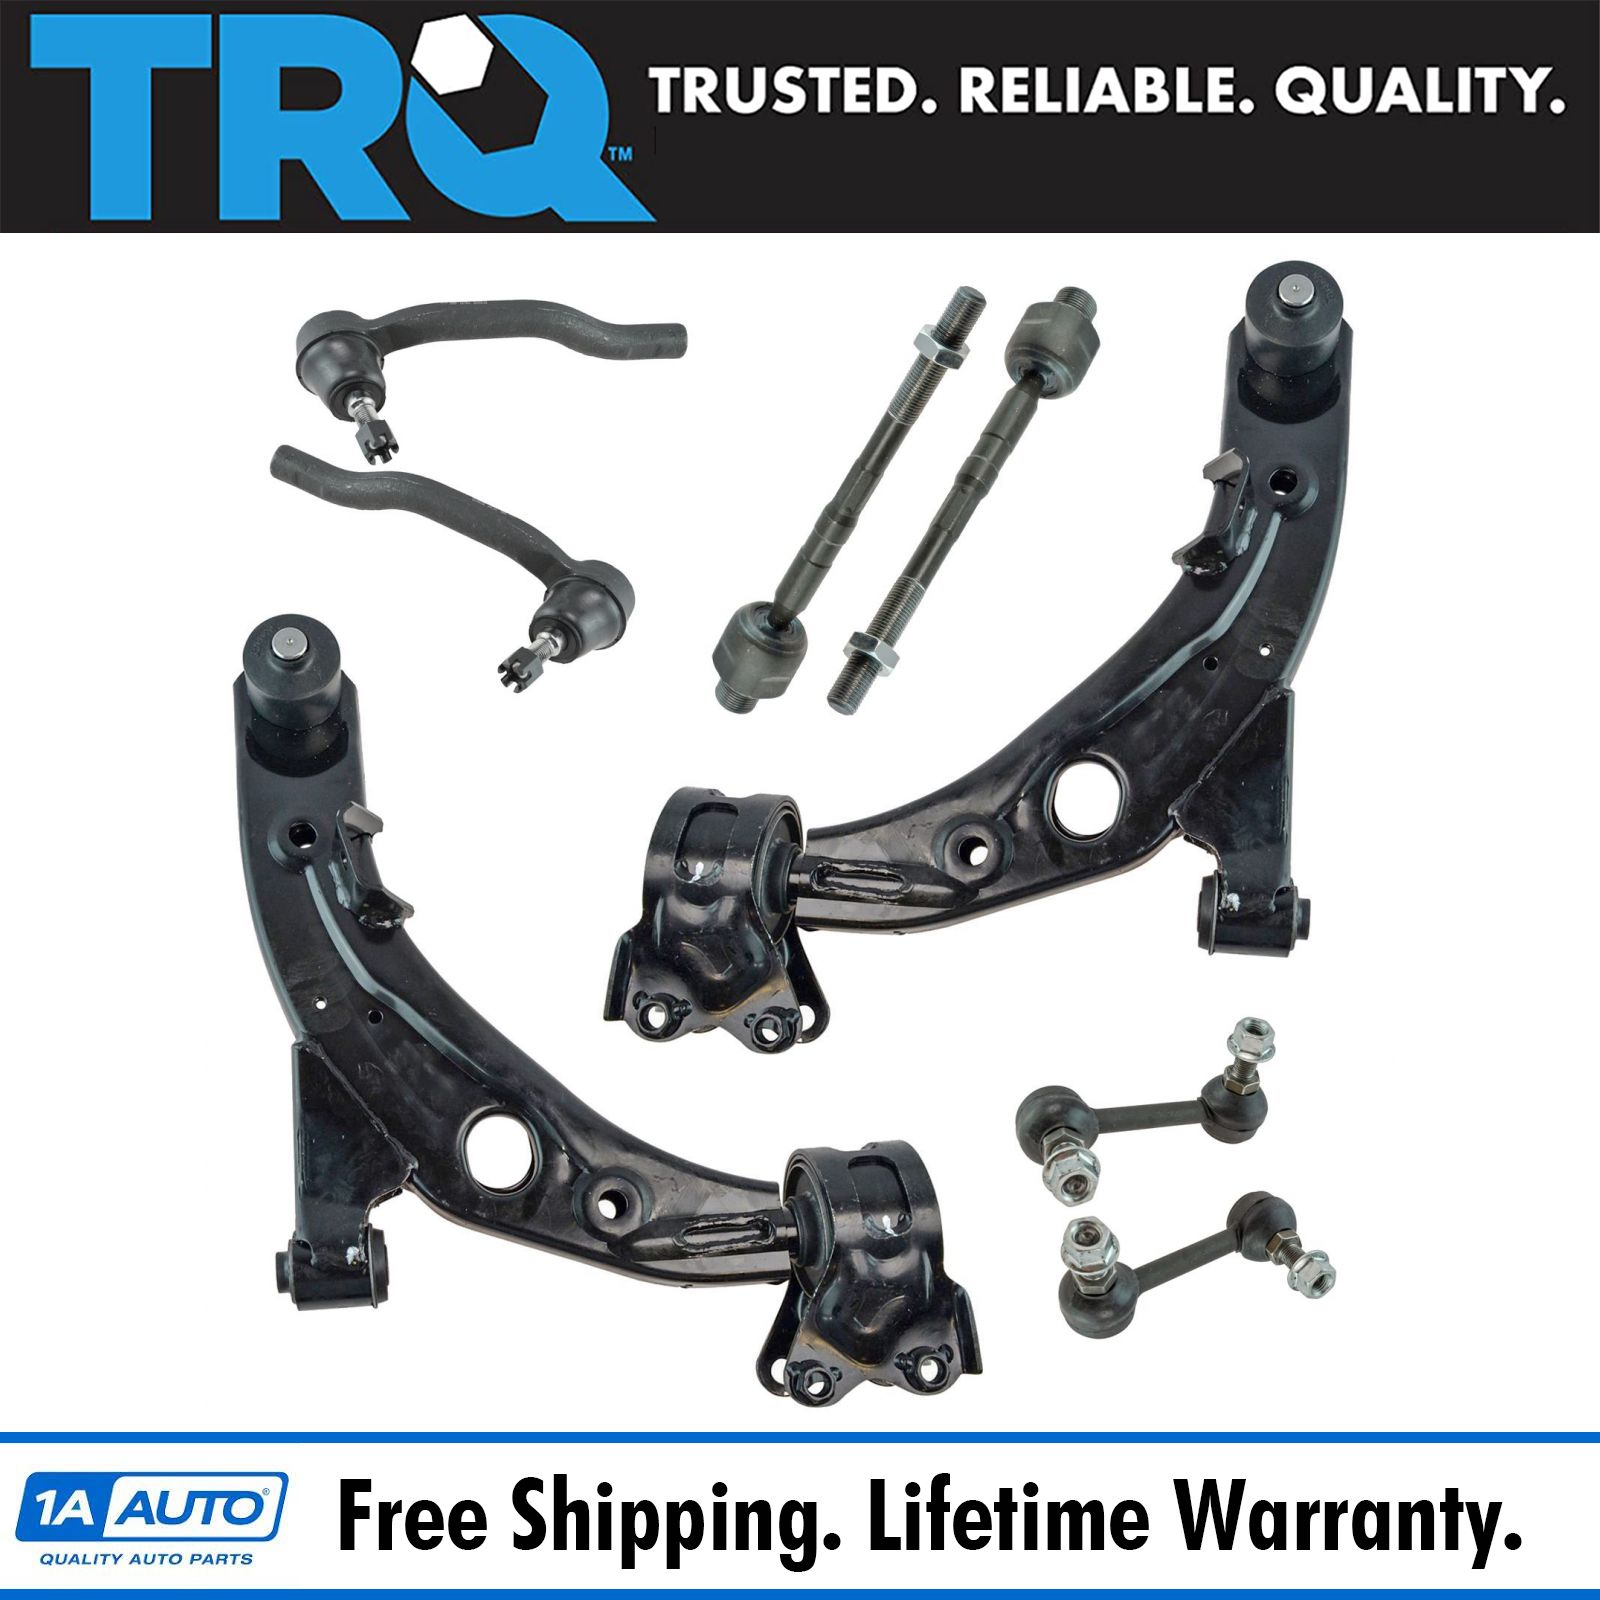 12 Piece Kit Upper Front /& Rear Control Arms Ball Joints Tie Rod Ends Sway Ba...